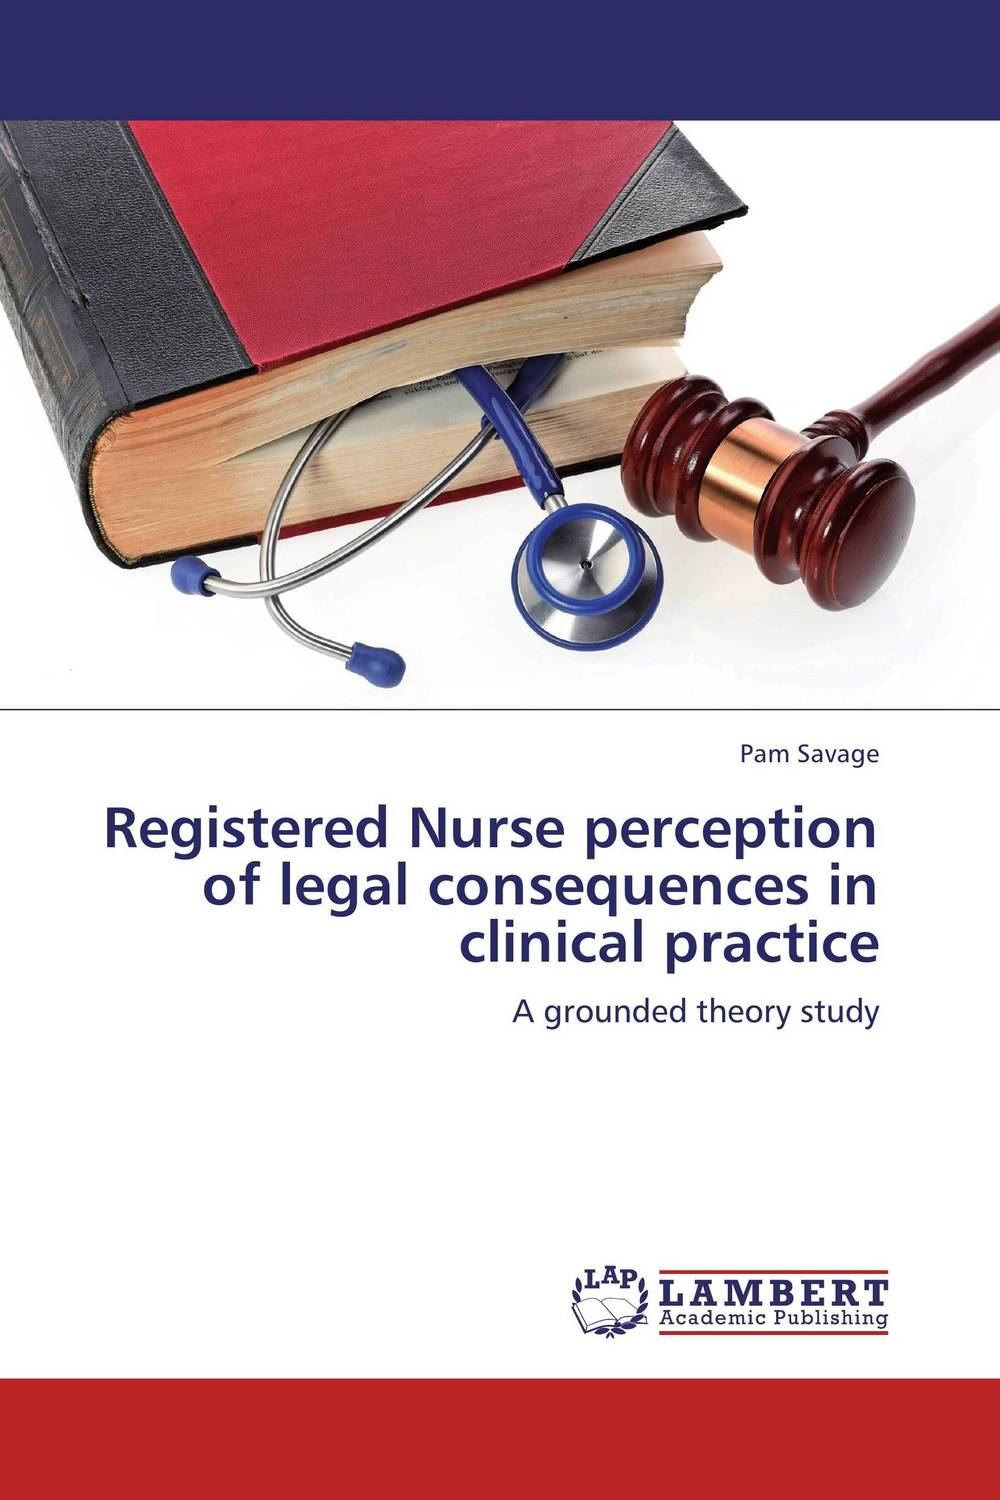 Registered Nurse perception of legal consequences in clinical practice evaluation and legal theory